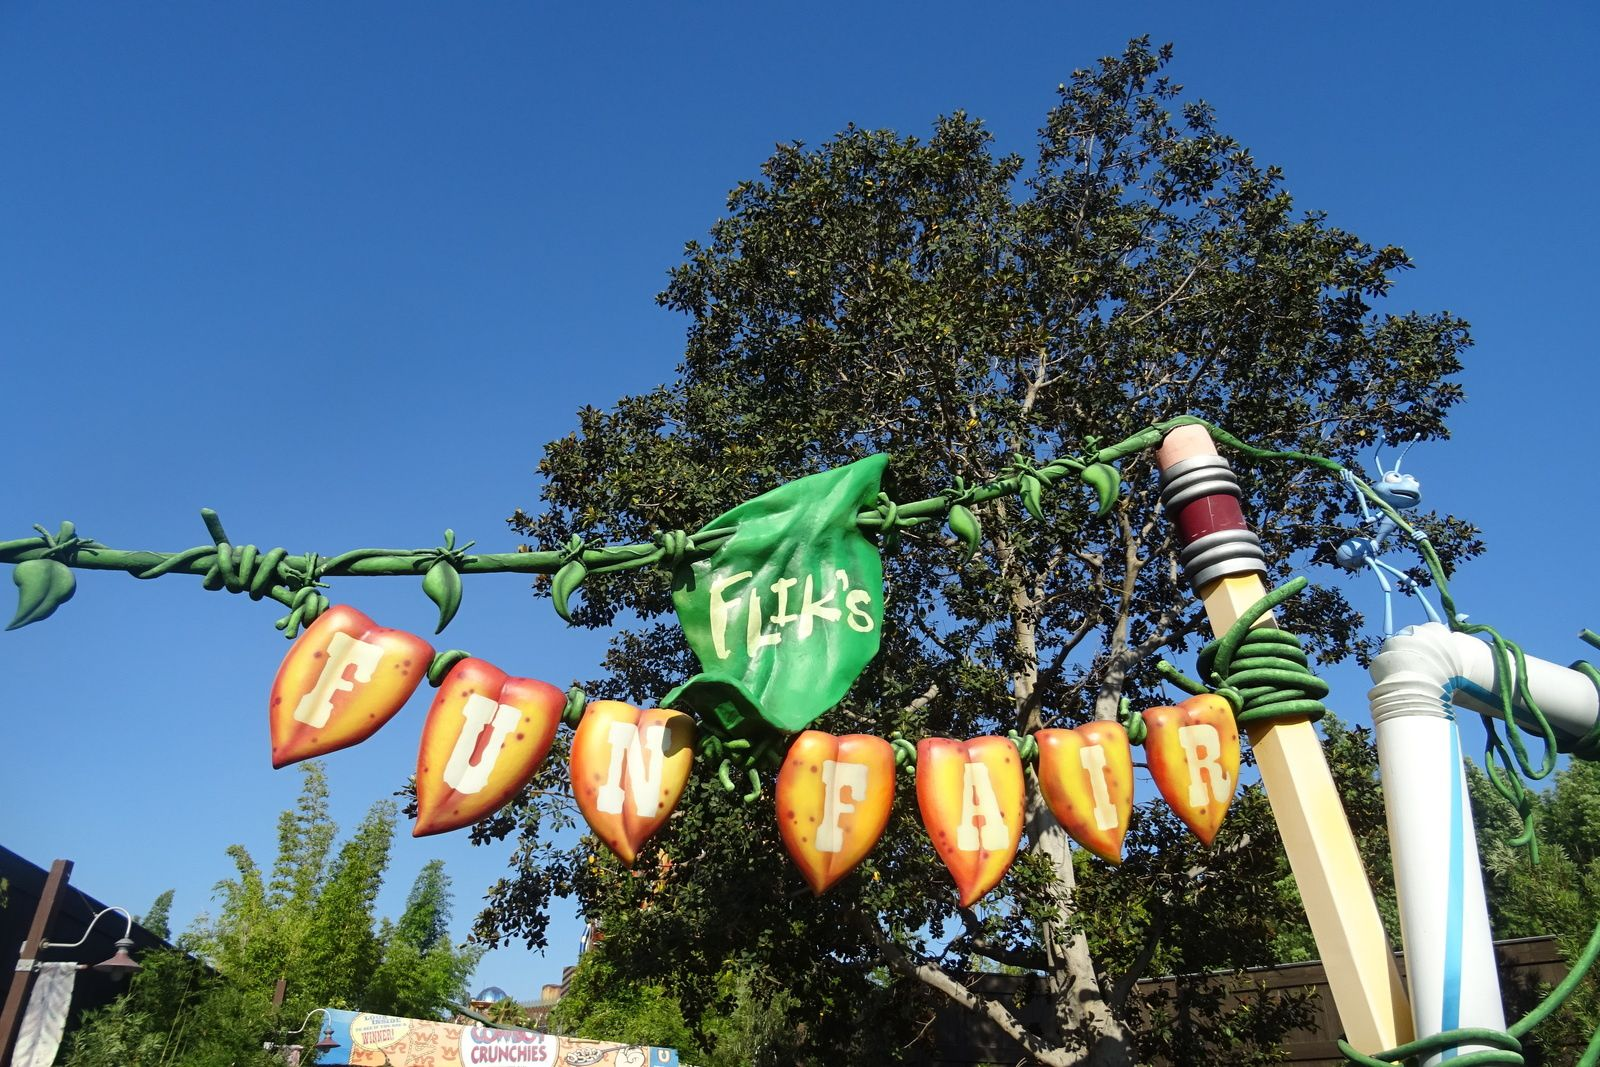 A Bug's Land, Disney California Adventure